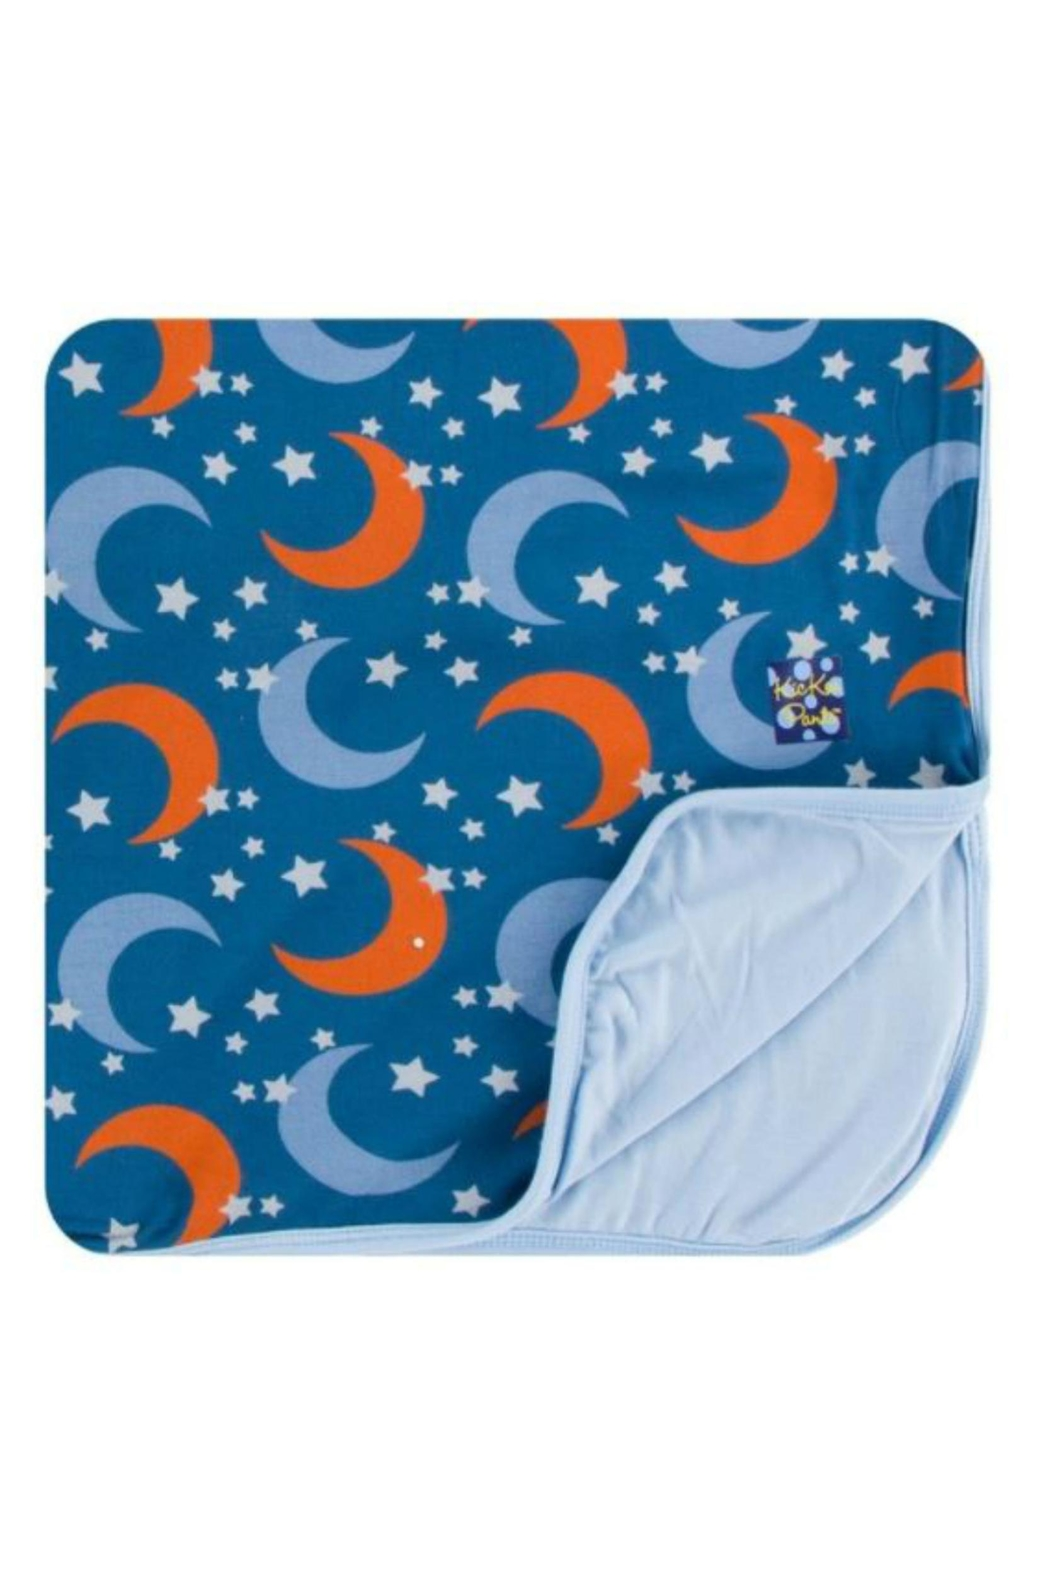 Kickee Pants Twilight Moon Toddler-Blanket - Main Image